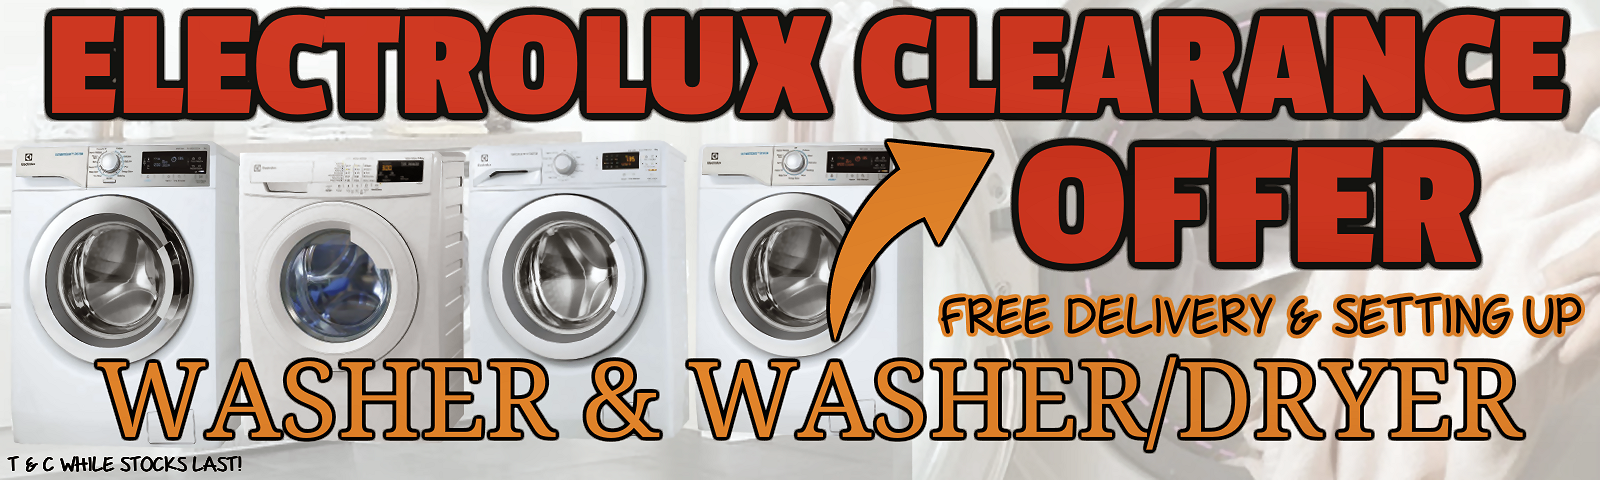 Electrolux Washer/Dryer Clearance Offer!!